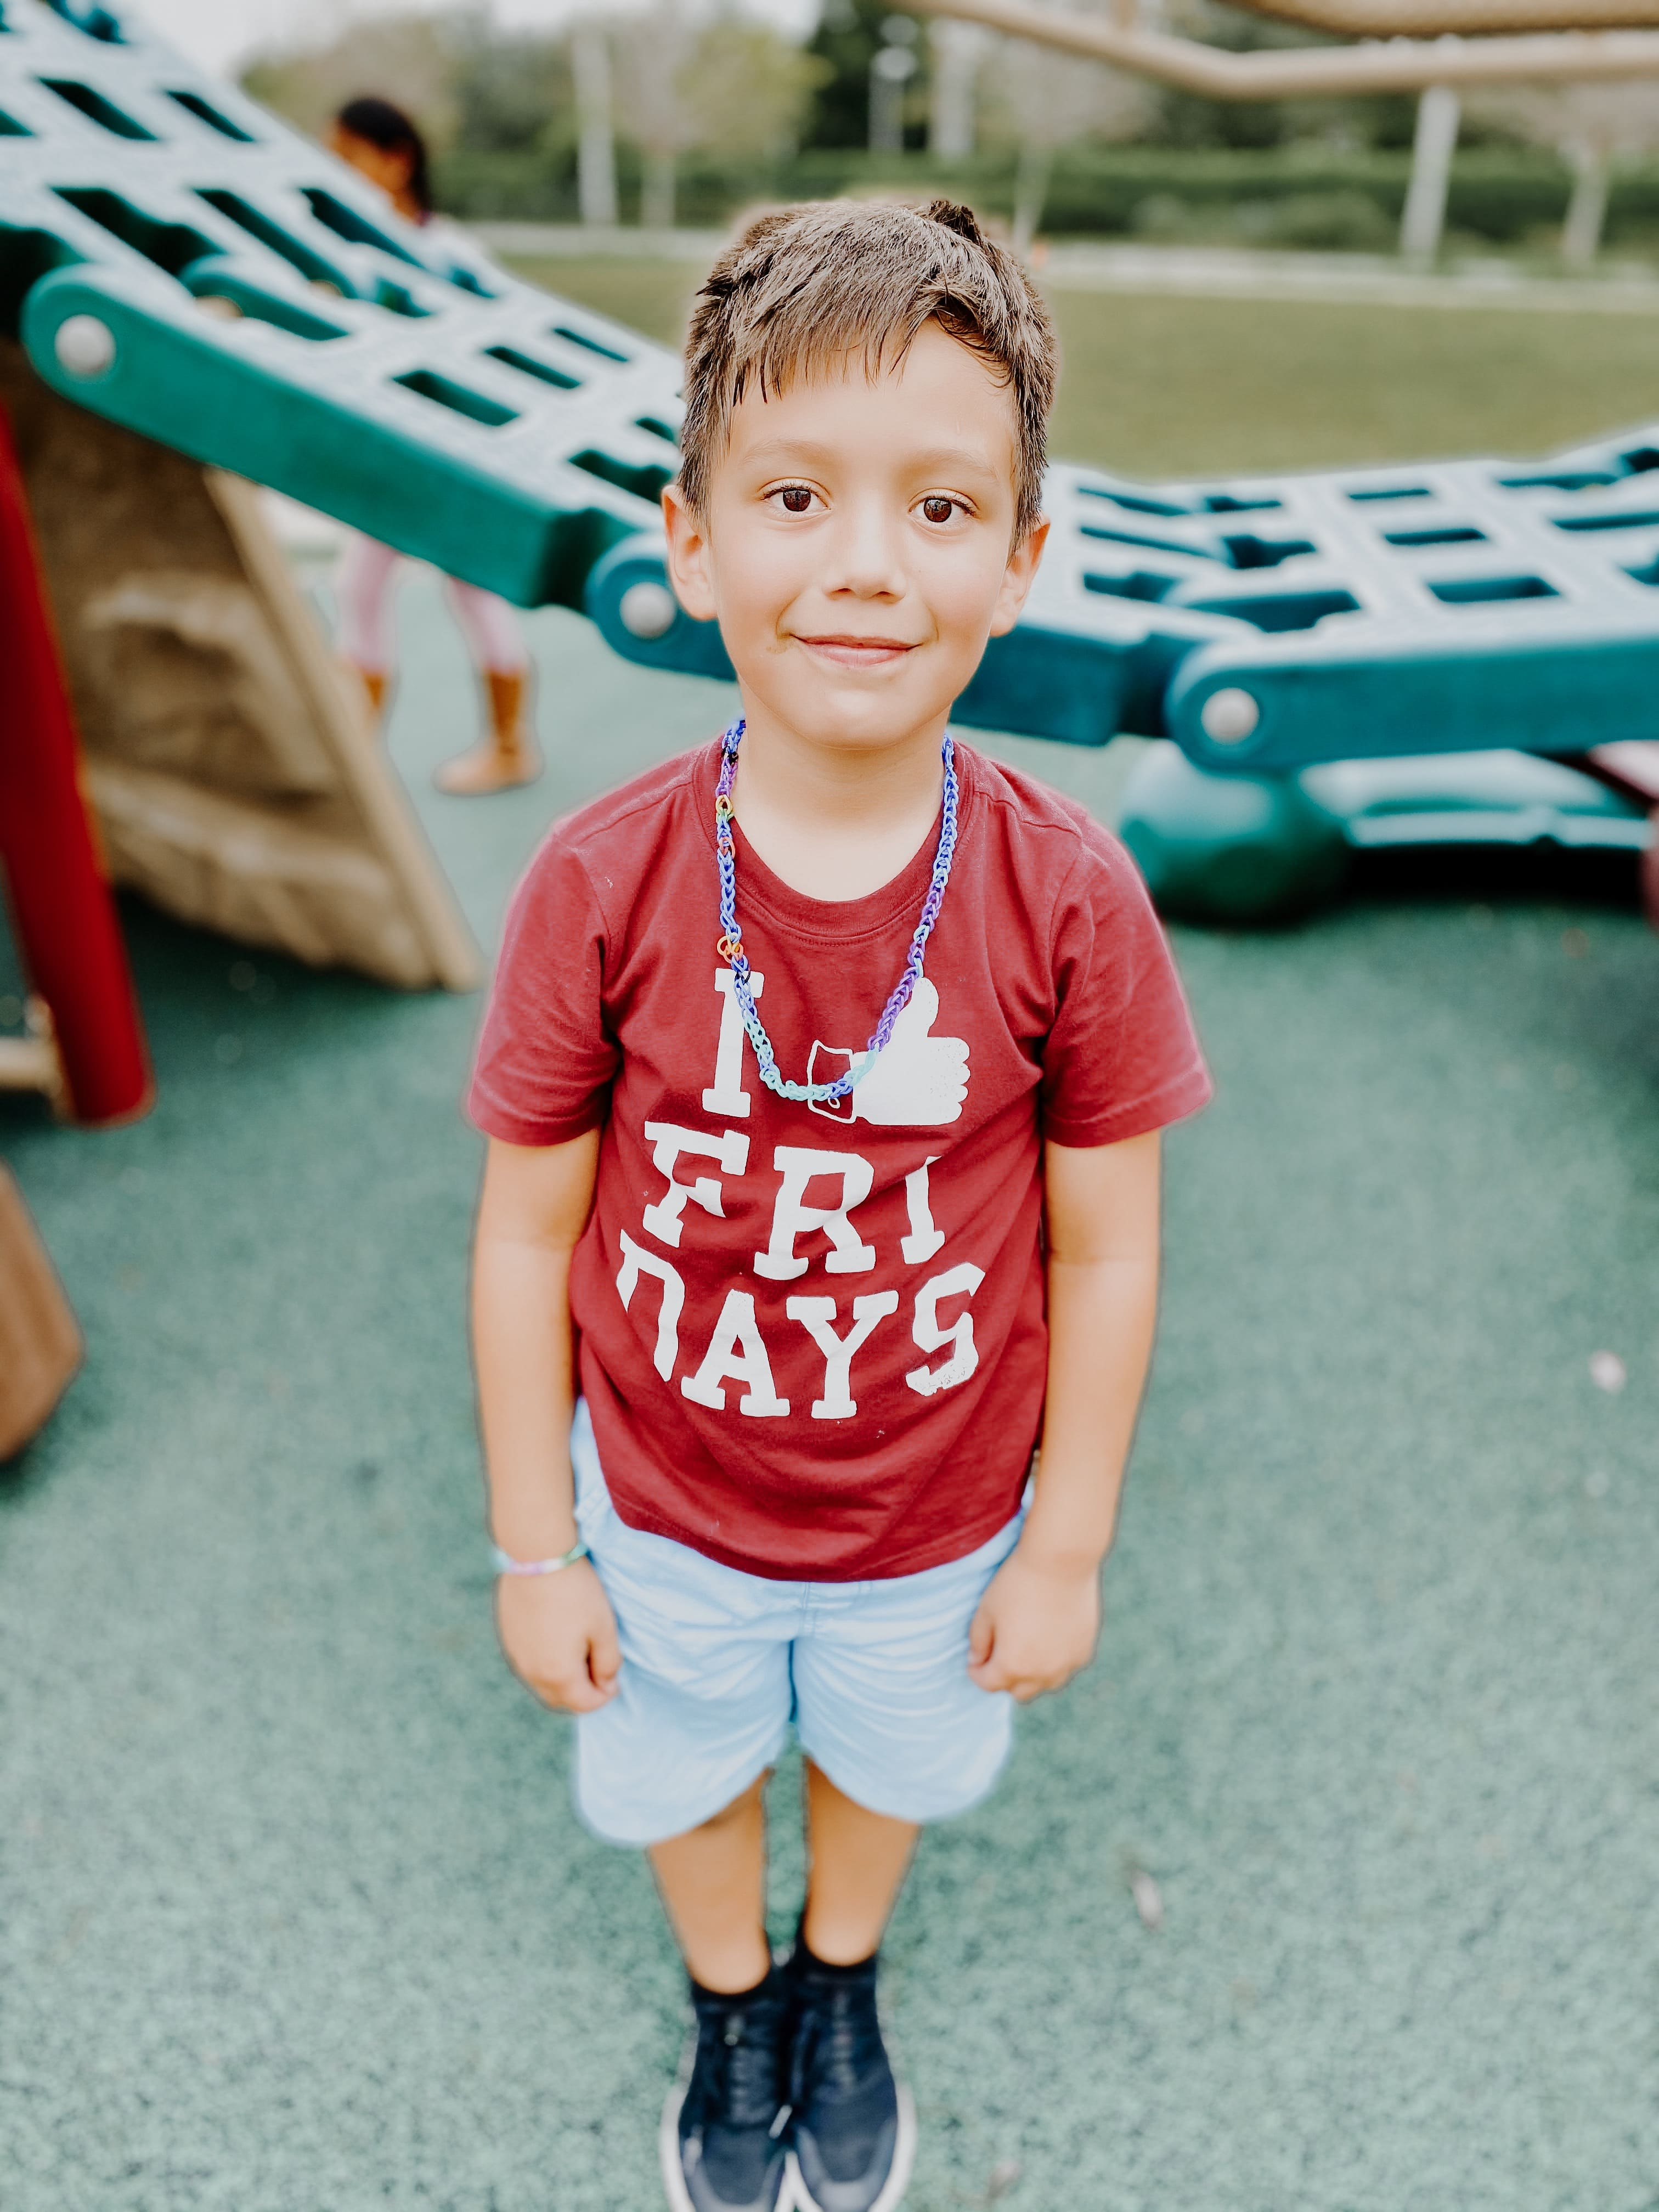 Day Camp 10/18/2019 Image number 1